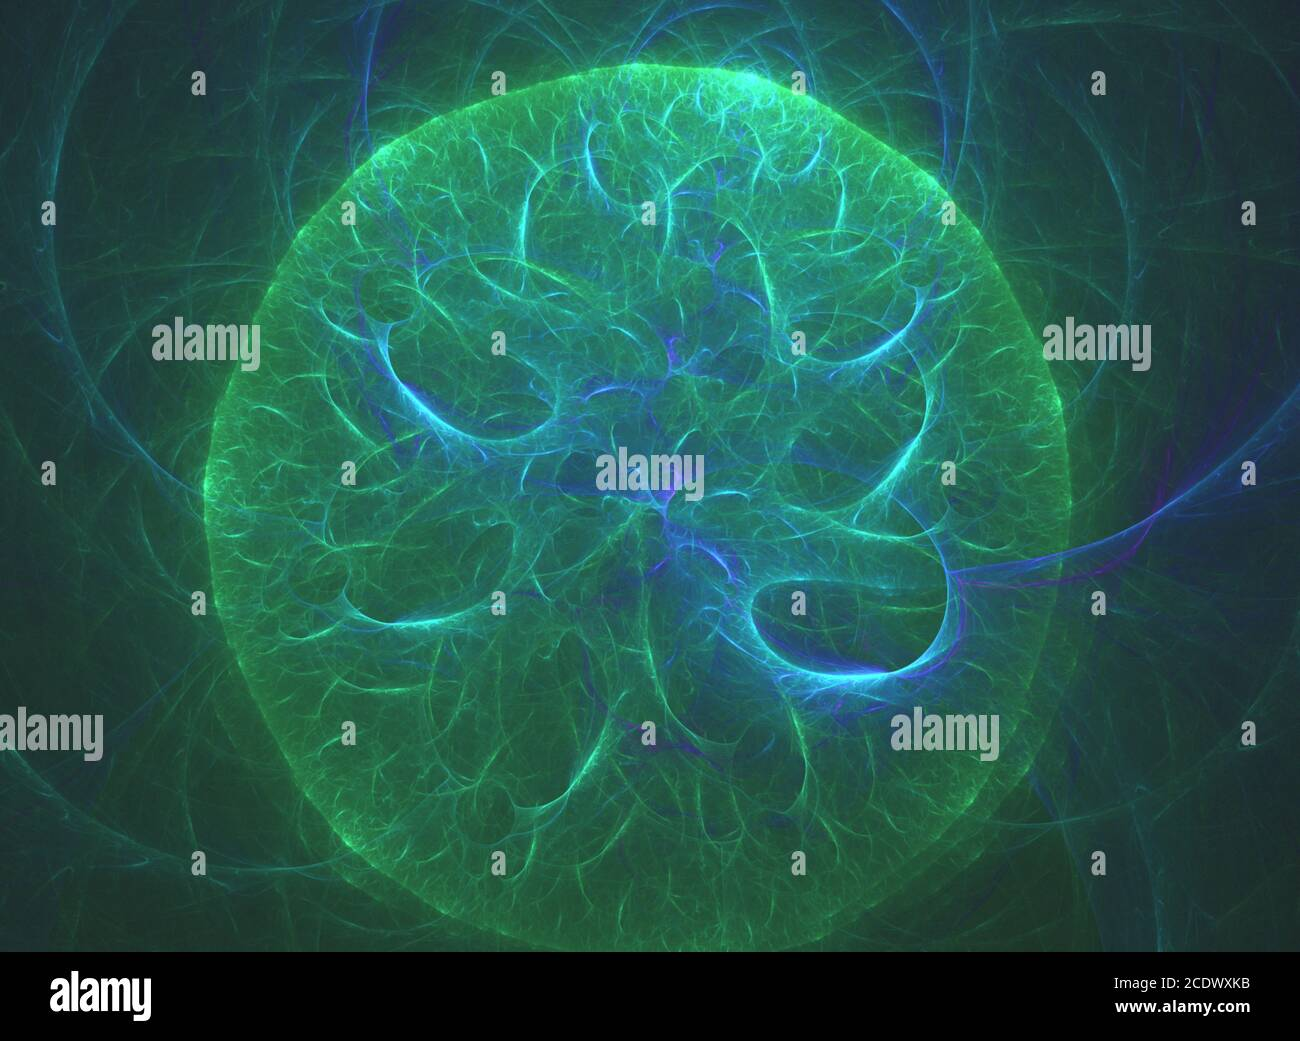 glowing green curved lines in shape of sphere over dark Abstract Background space universe. Illustration Stock Photo